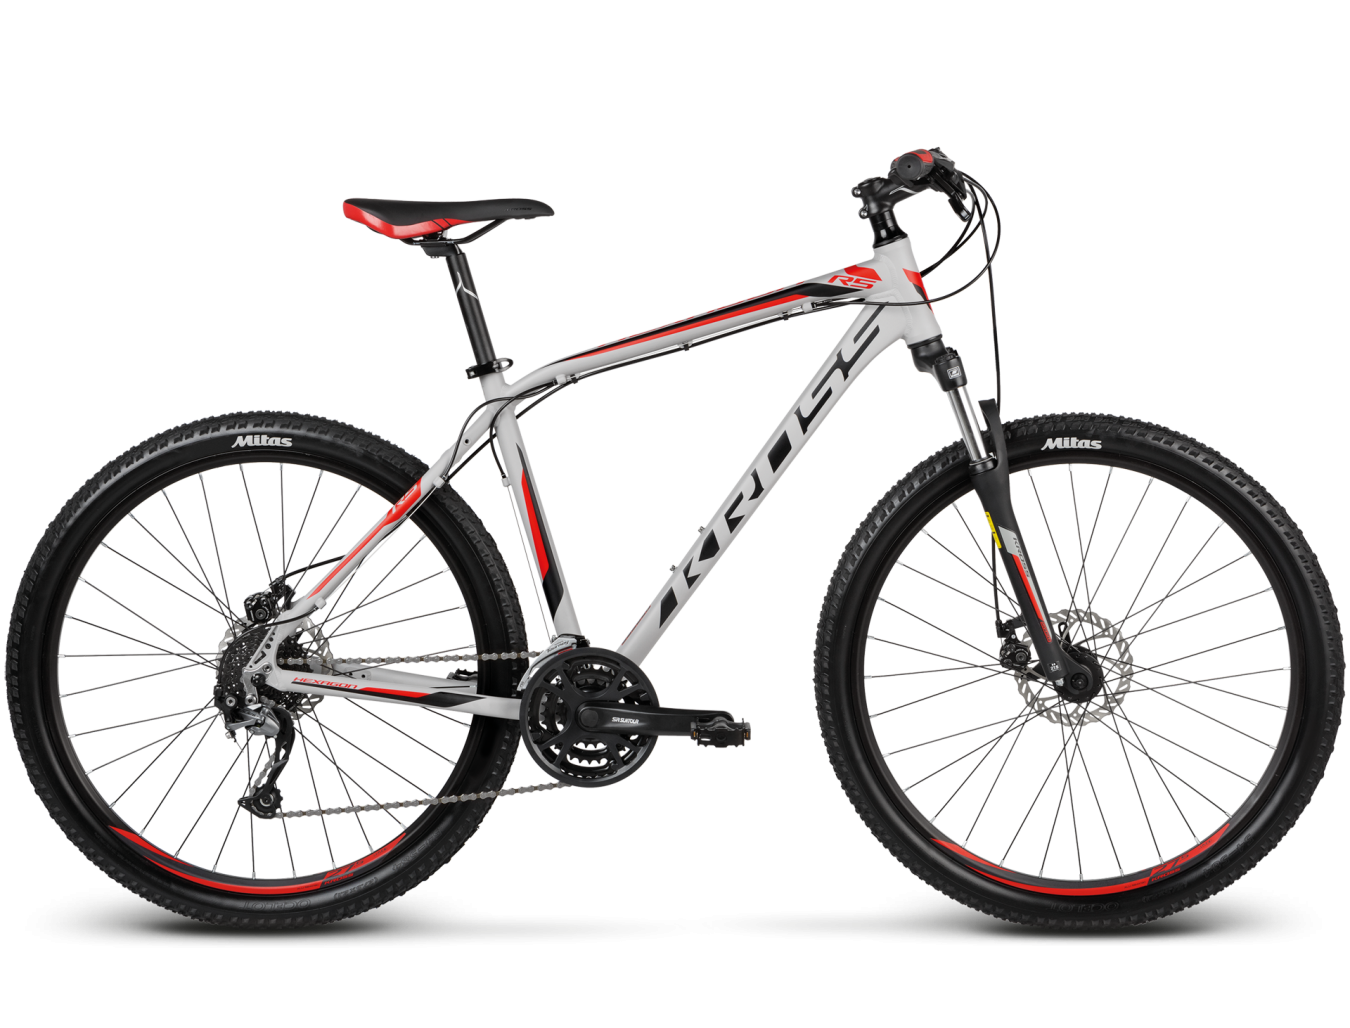 BICI KROSS MTB 27,5 Hexagon R5 categoria MTB HEXAGON R 27,5